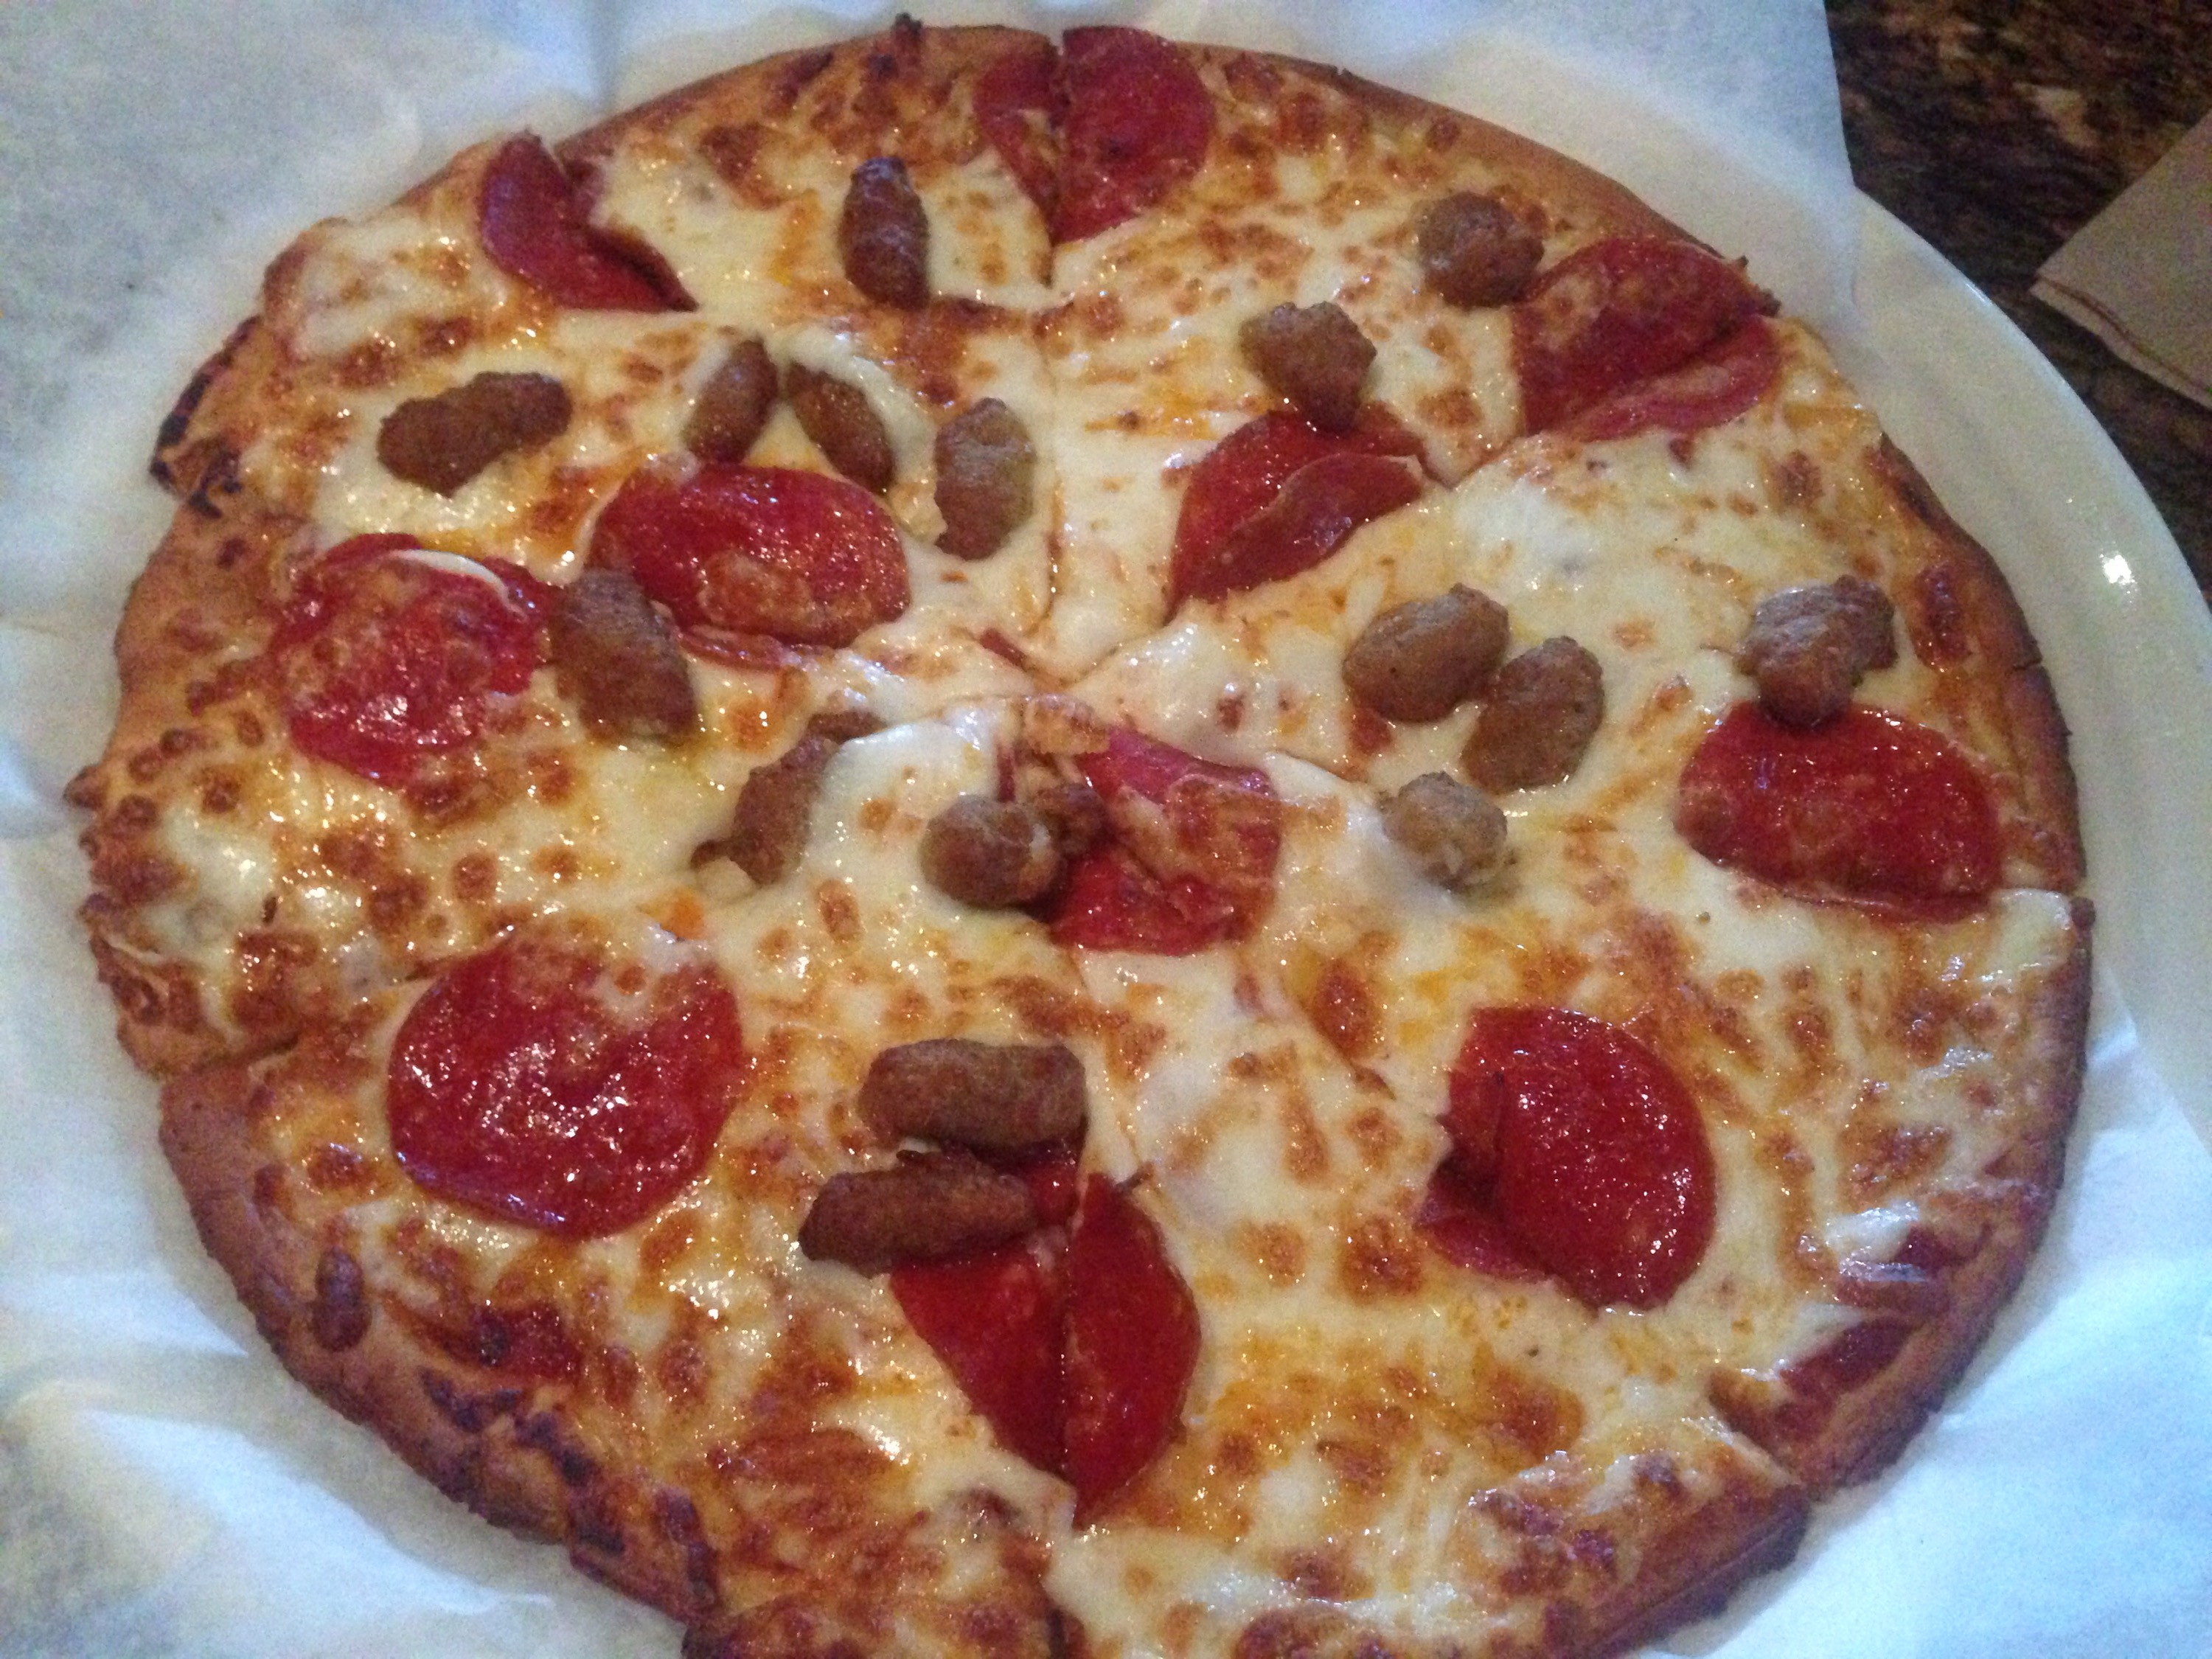 Gluten-free pepperoni and sausage pizza